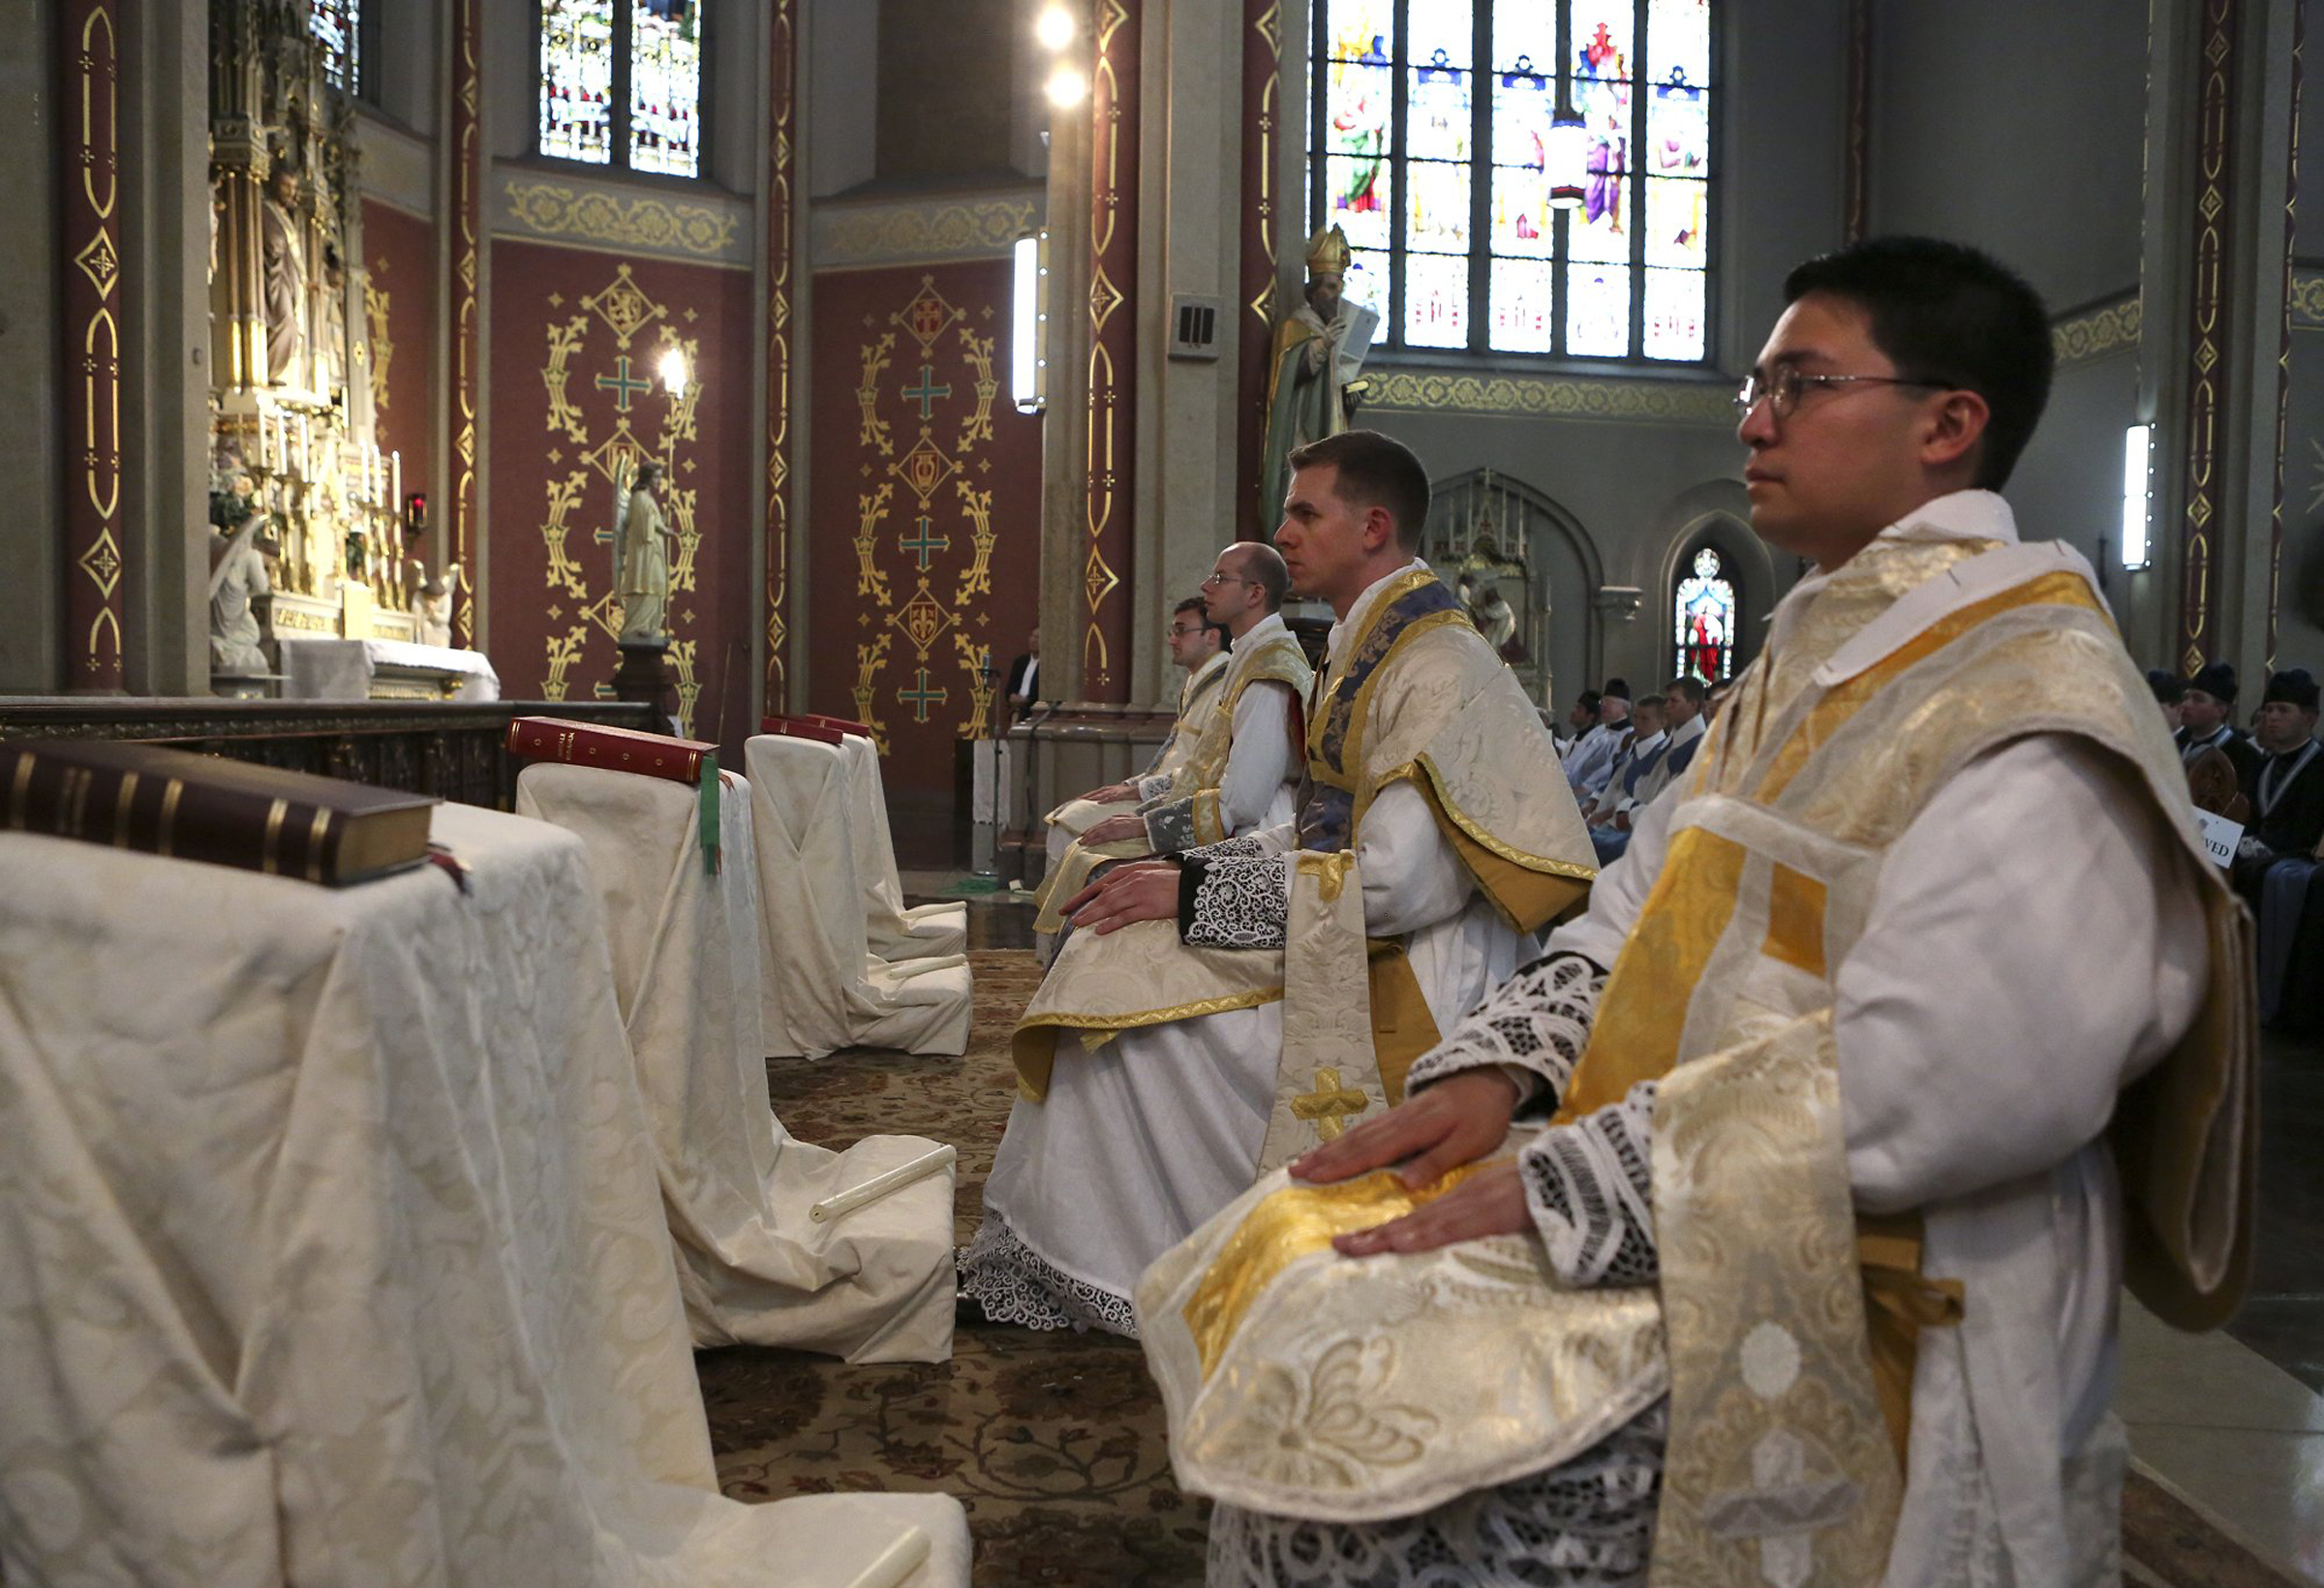 Right to left, Abbe Joel Estrada, Abbe Andrew Todd, Abbe Benjamin Coggeshall and Abbe Francis Altiere sit on the altar during their ordination at St. Francis de Sales on Tuesday (Aug. 5). The Mass was celebrated in Latin by Cardinal Raymond Burke, the former Archbishop of St. Louis. For use with RNS-LATIN-MASS, transmitted on August 6, 2014, Photo by Cristina Fletes-Boutte, St. Louis Post-Dispatch.